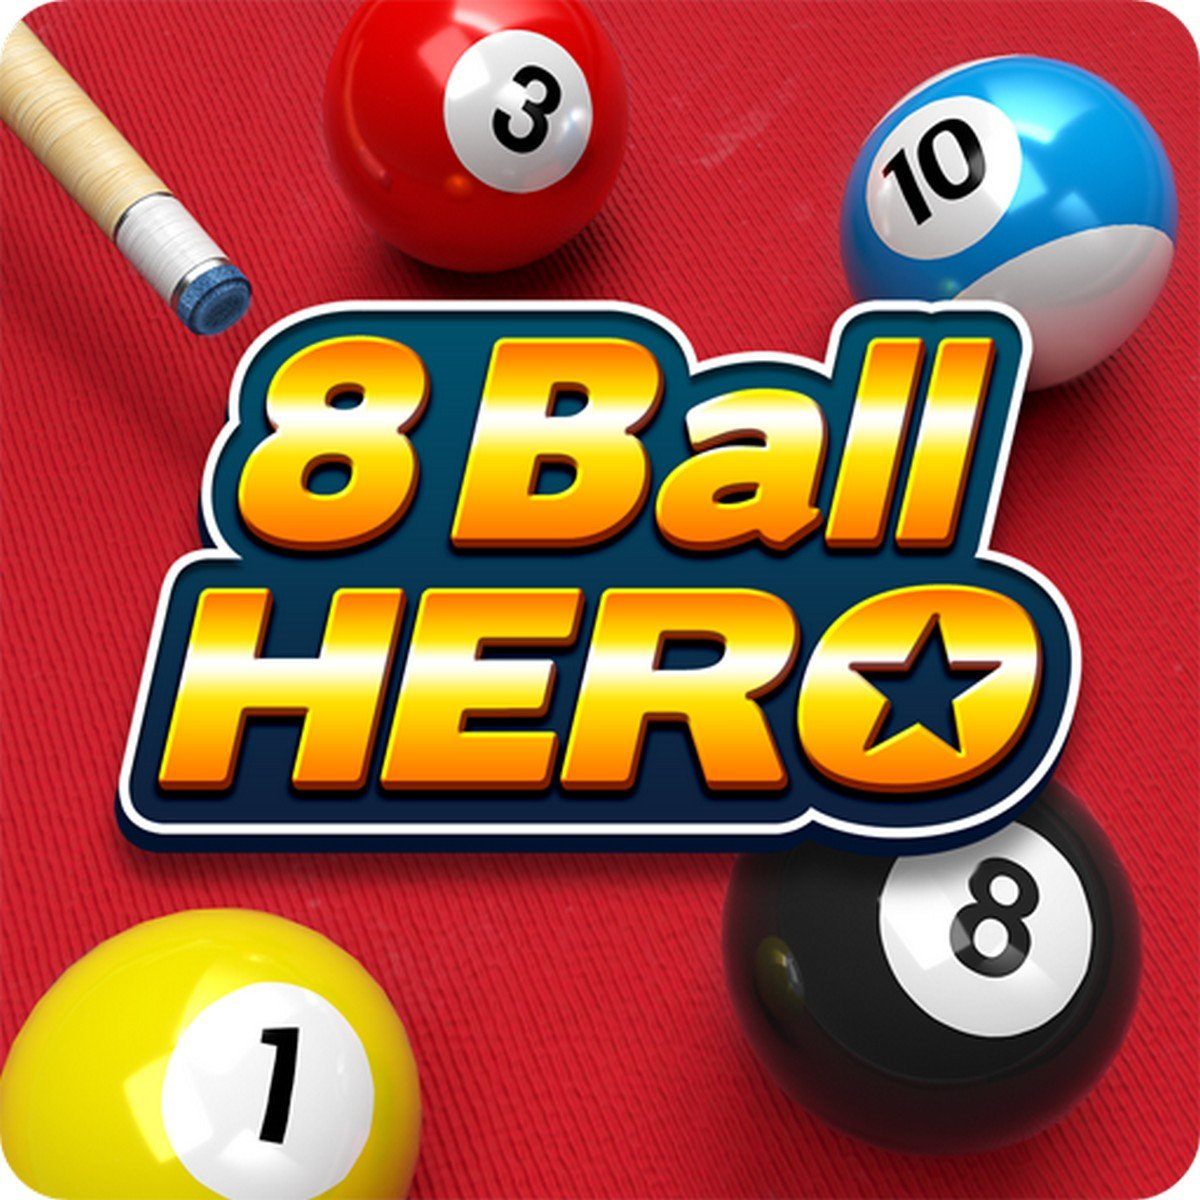 8 Ball Hero APK MOD v1.17 (Cash/Vidas ilimitadas) 1